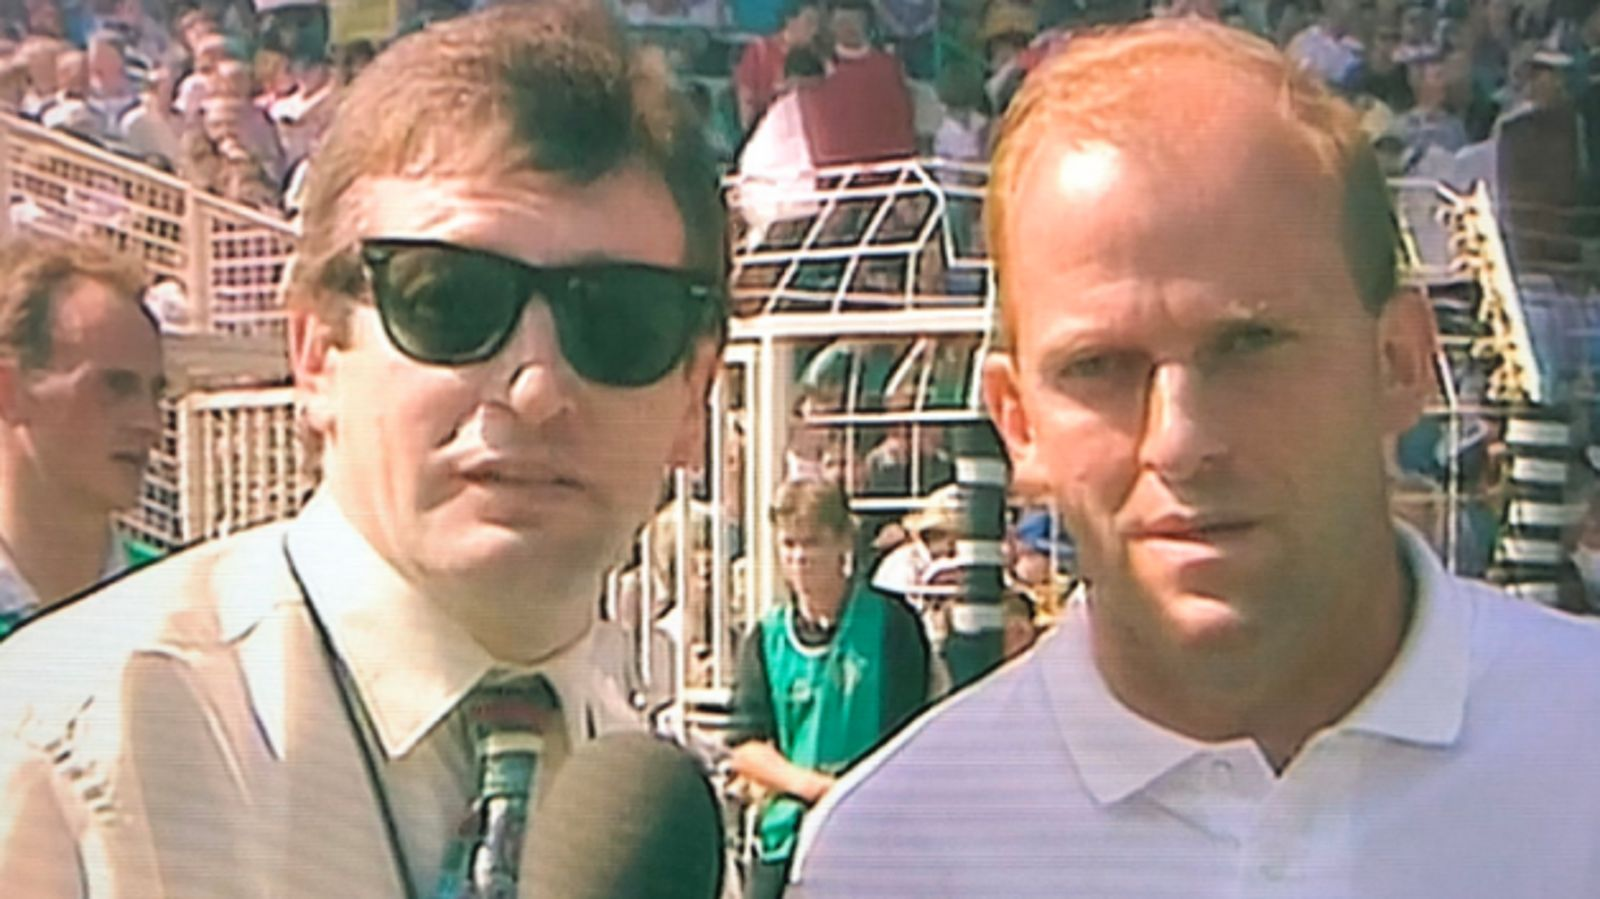 Image - RTÉ's sideline reporter Tony O'Donoghue grabs a few words with Ger Loughnane at half-time of 1995 Al